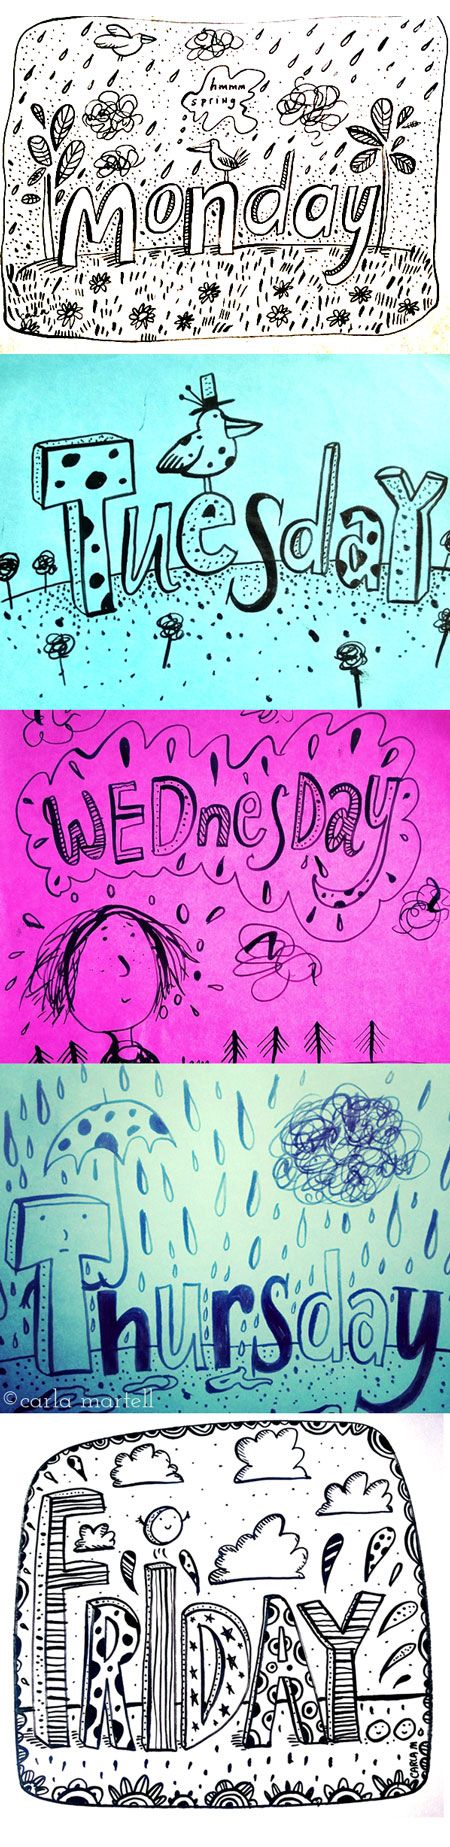 Part of my daily doodle project | Carla Martell